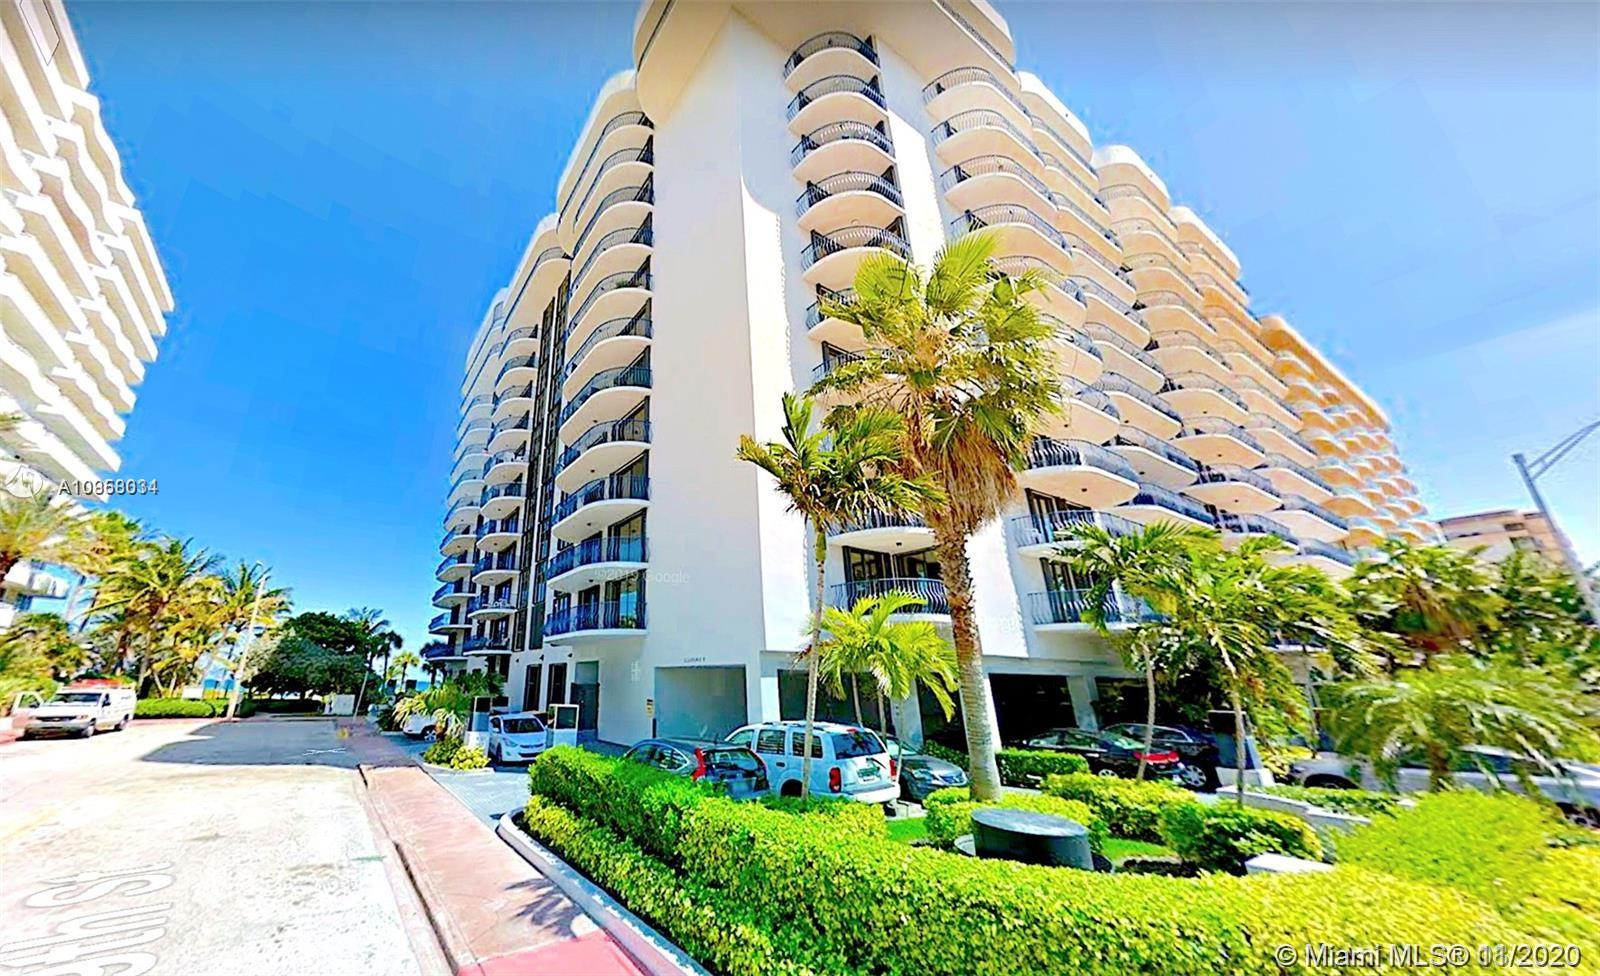 LOWEST PRICE IN THE BUILDING!!! BREATHTAKING SUNSETS AND CITY VIEWS, LARGE BALCONY, OCEANFRONT BOUTIQUE BUILDING, CHAMPLAIN TOWERS NORTH IS A 24 HRS SECURITY LOCATED IN DESIRABLE SURFSIDE !! , 1200 SQ FT APARTMENT! 1 BEDROOM, 2 FULL BATHS, OCEAN FRONT HEATED POOL, RENOVATED FITNESS CENTER, BARBECUE AREA, SAUNA & STATE OF THE ART ENTERTAINMENT CENTER. ALMOST FORGOT TO TELL ABOUT THE ENJOYABLE SAND BEACH AND OCEAN AT YOUR FEET, CLOSE TO RESTAURANTS, POST OFFICE, BAL HARBOR SHOPS AND MUCH MORE...